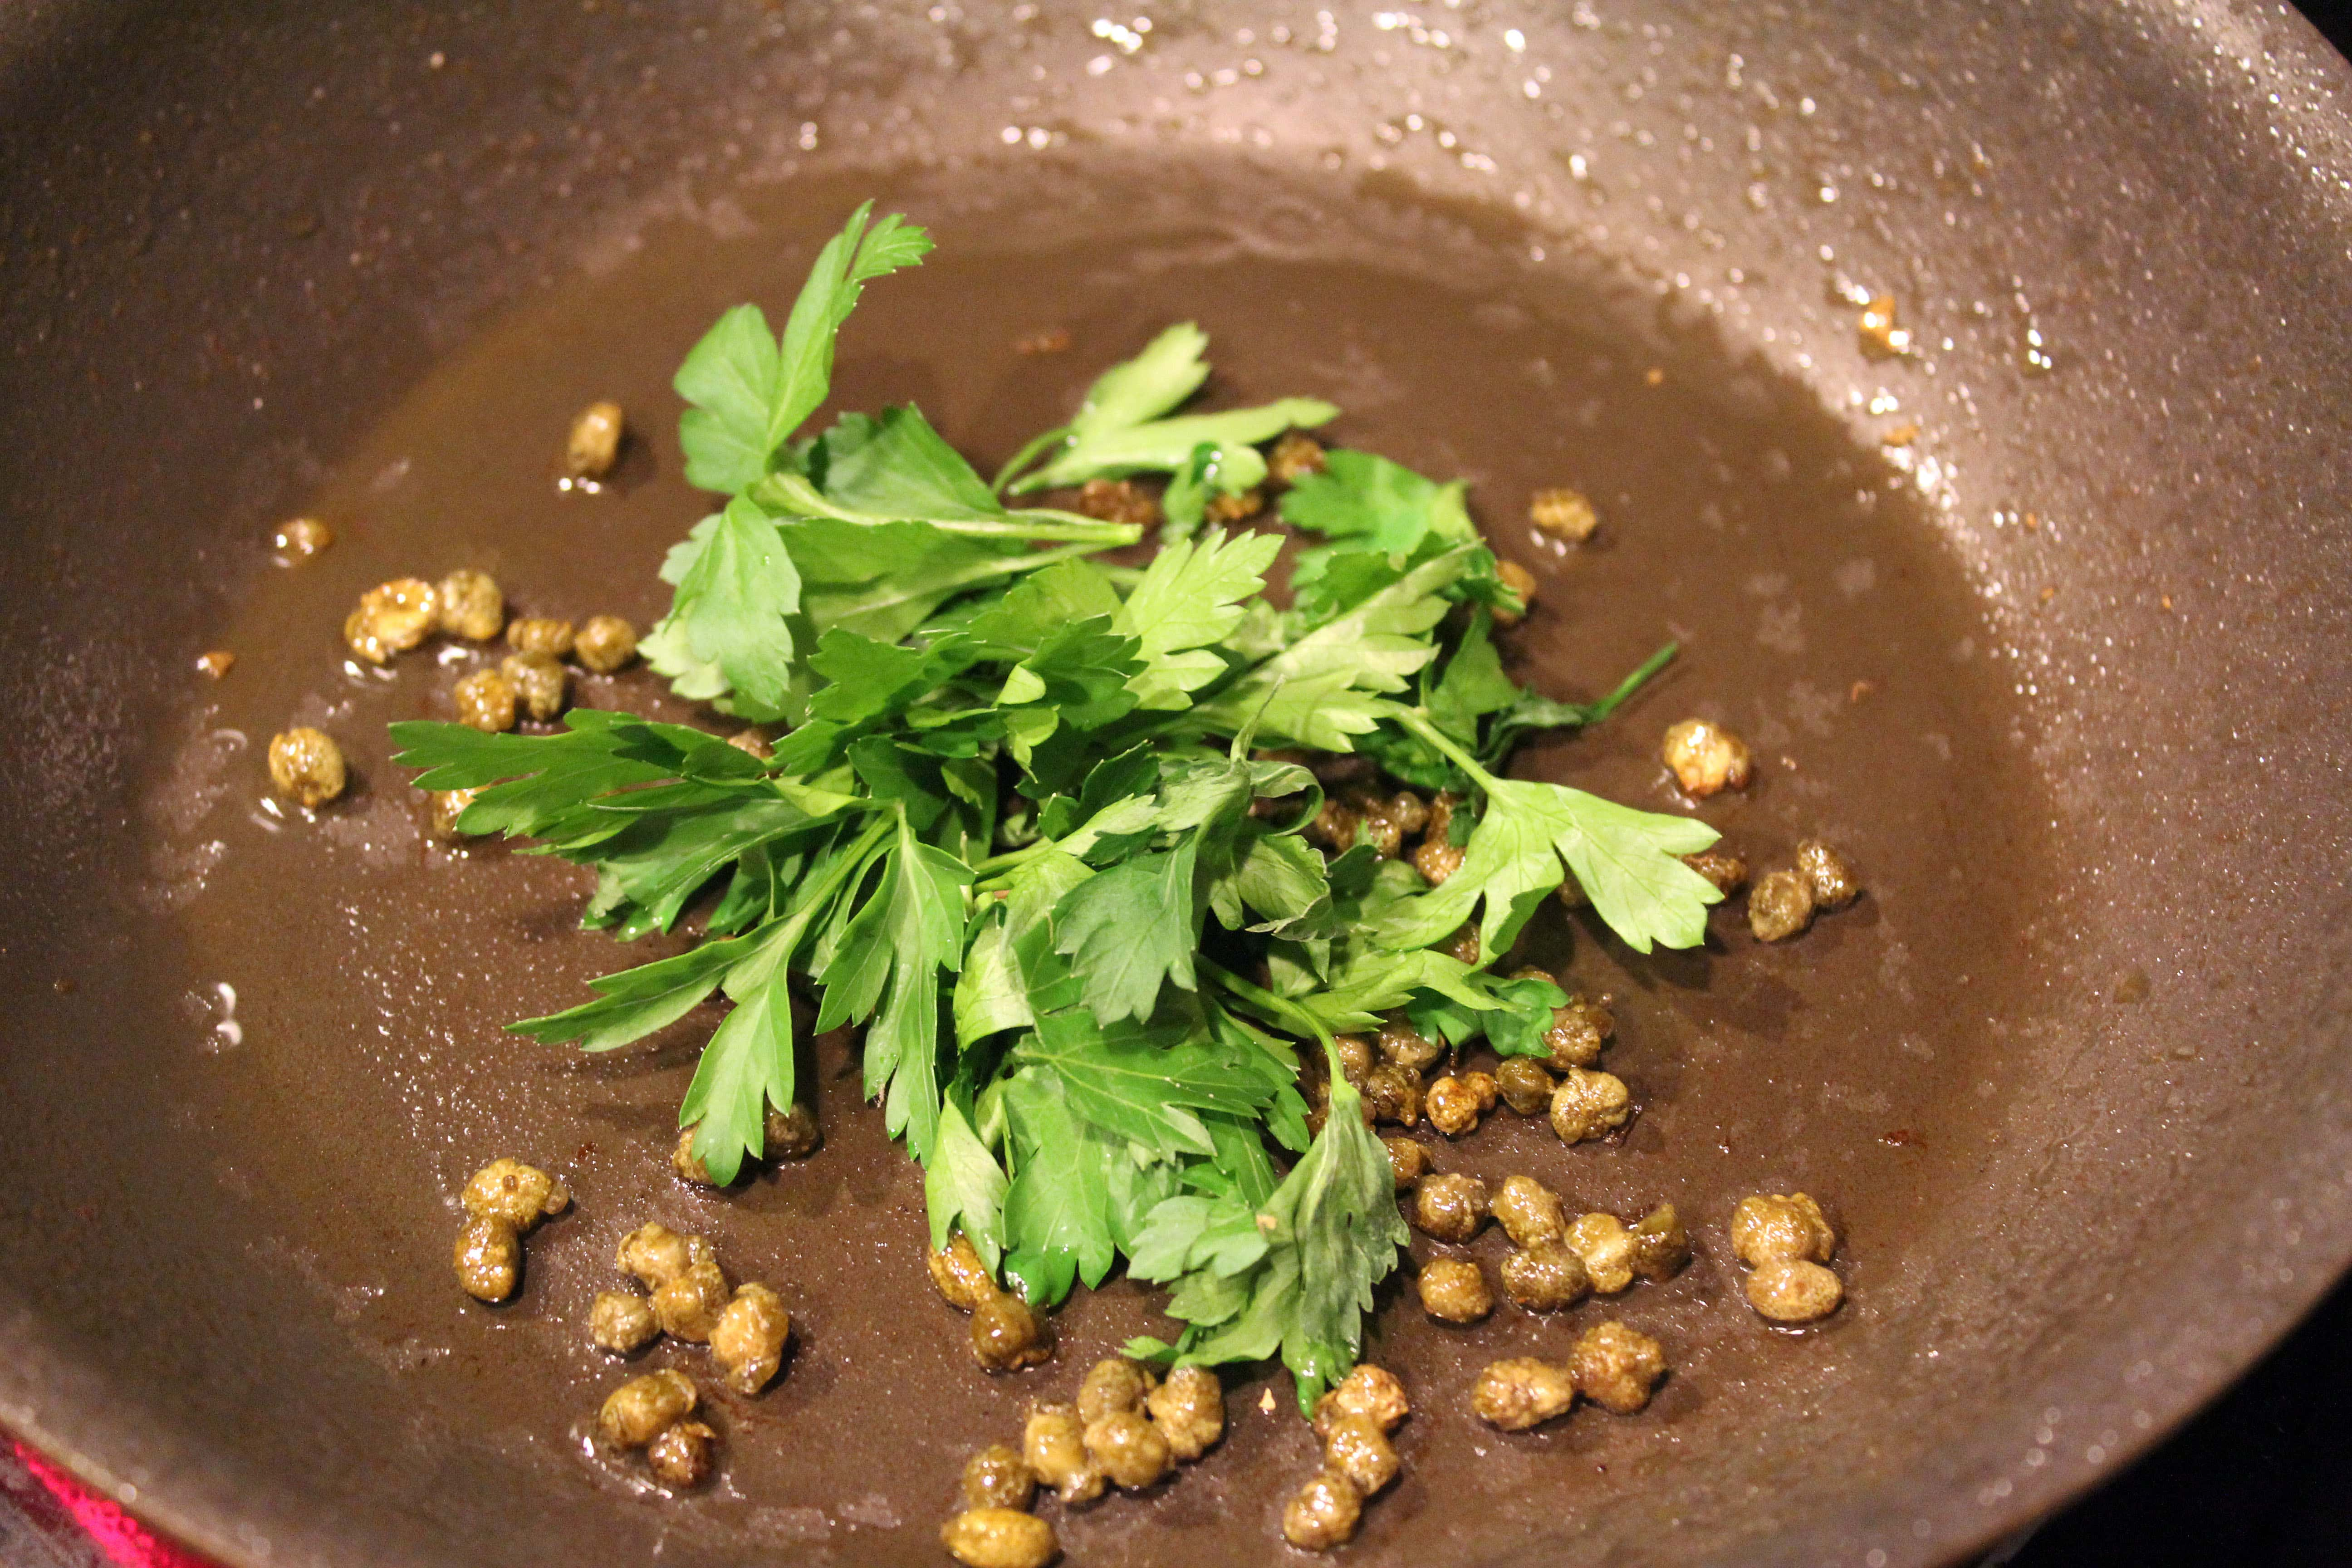 Add parsley to crispy capers